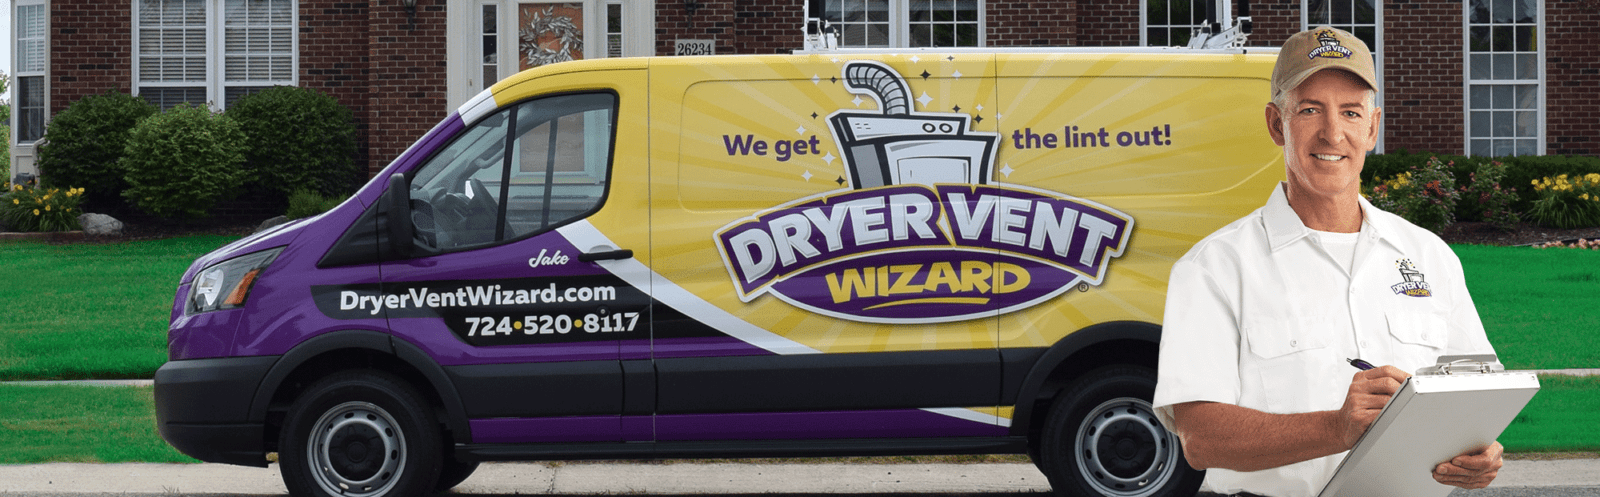 dryer-vent-wizard-franchise-facts